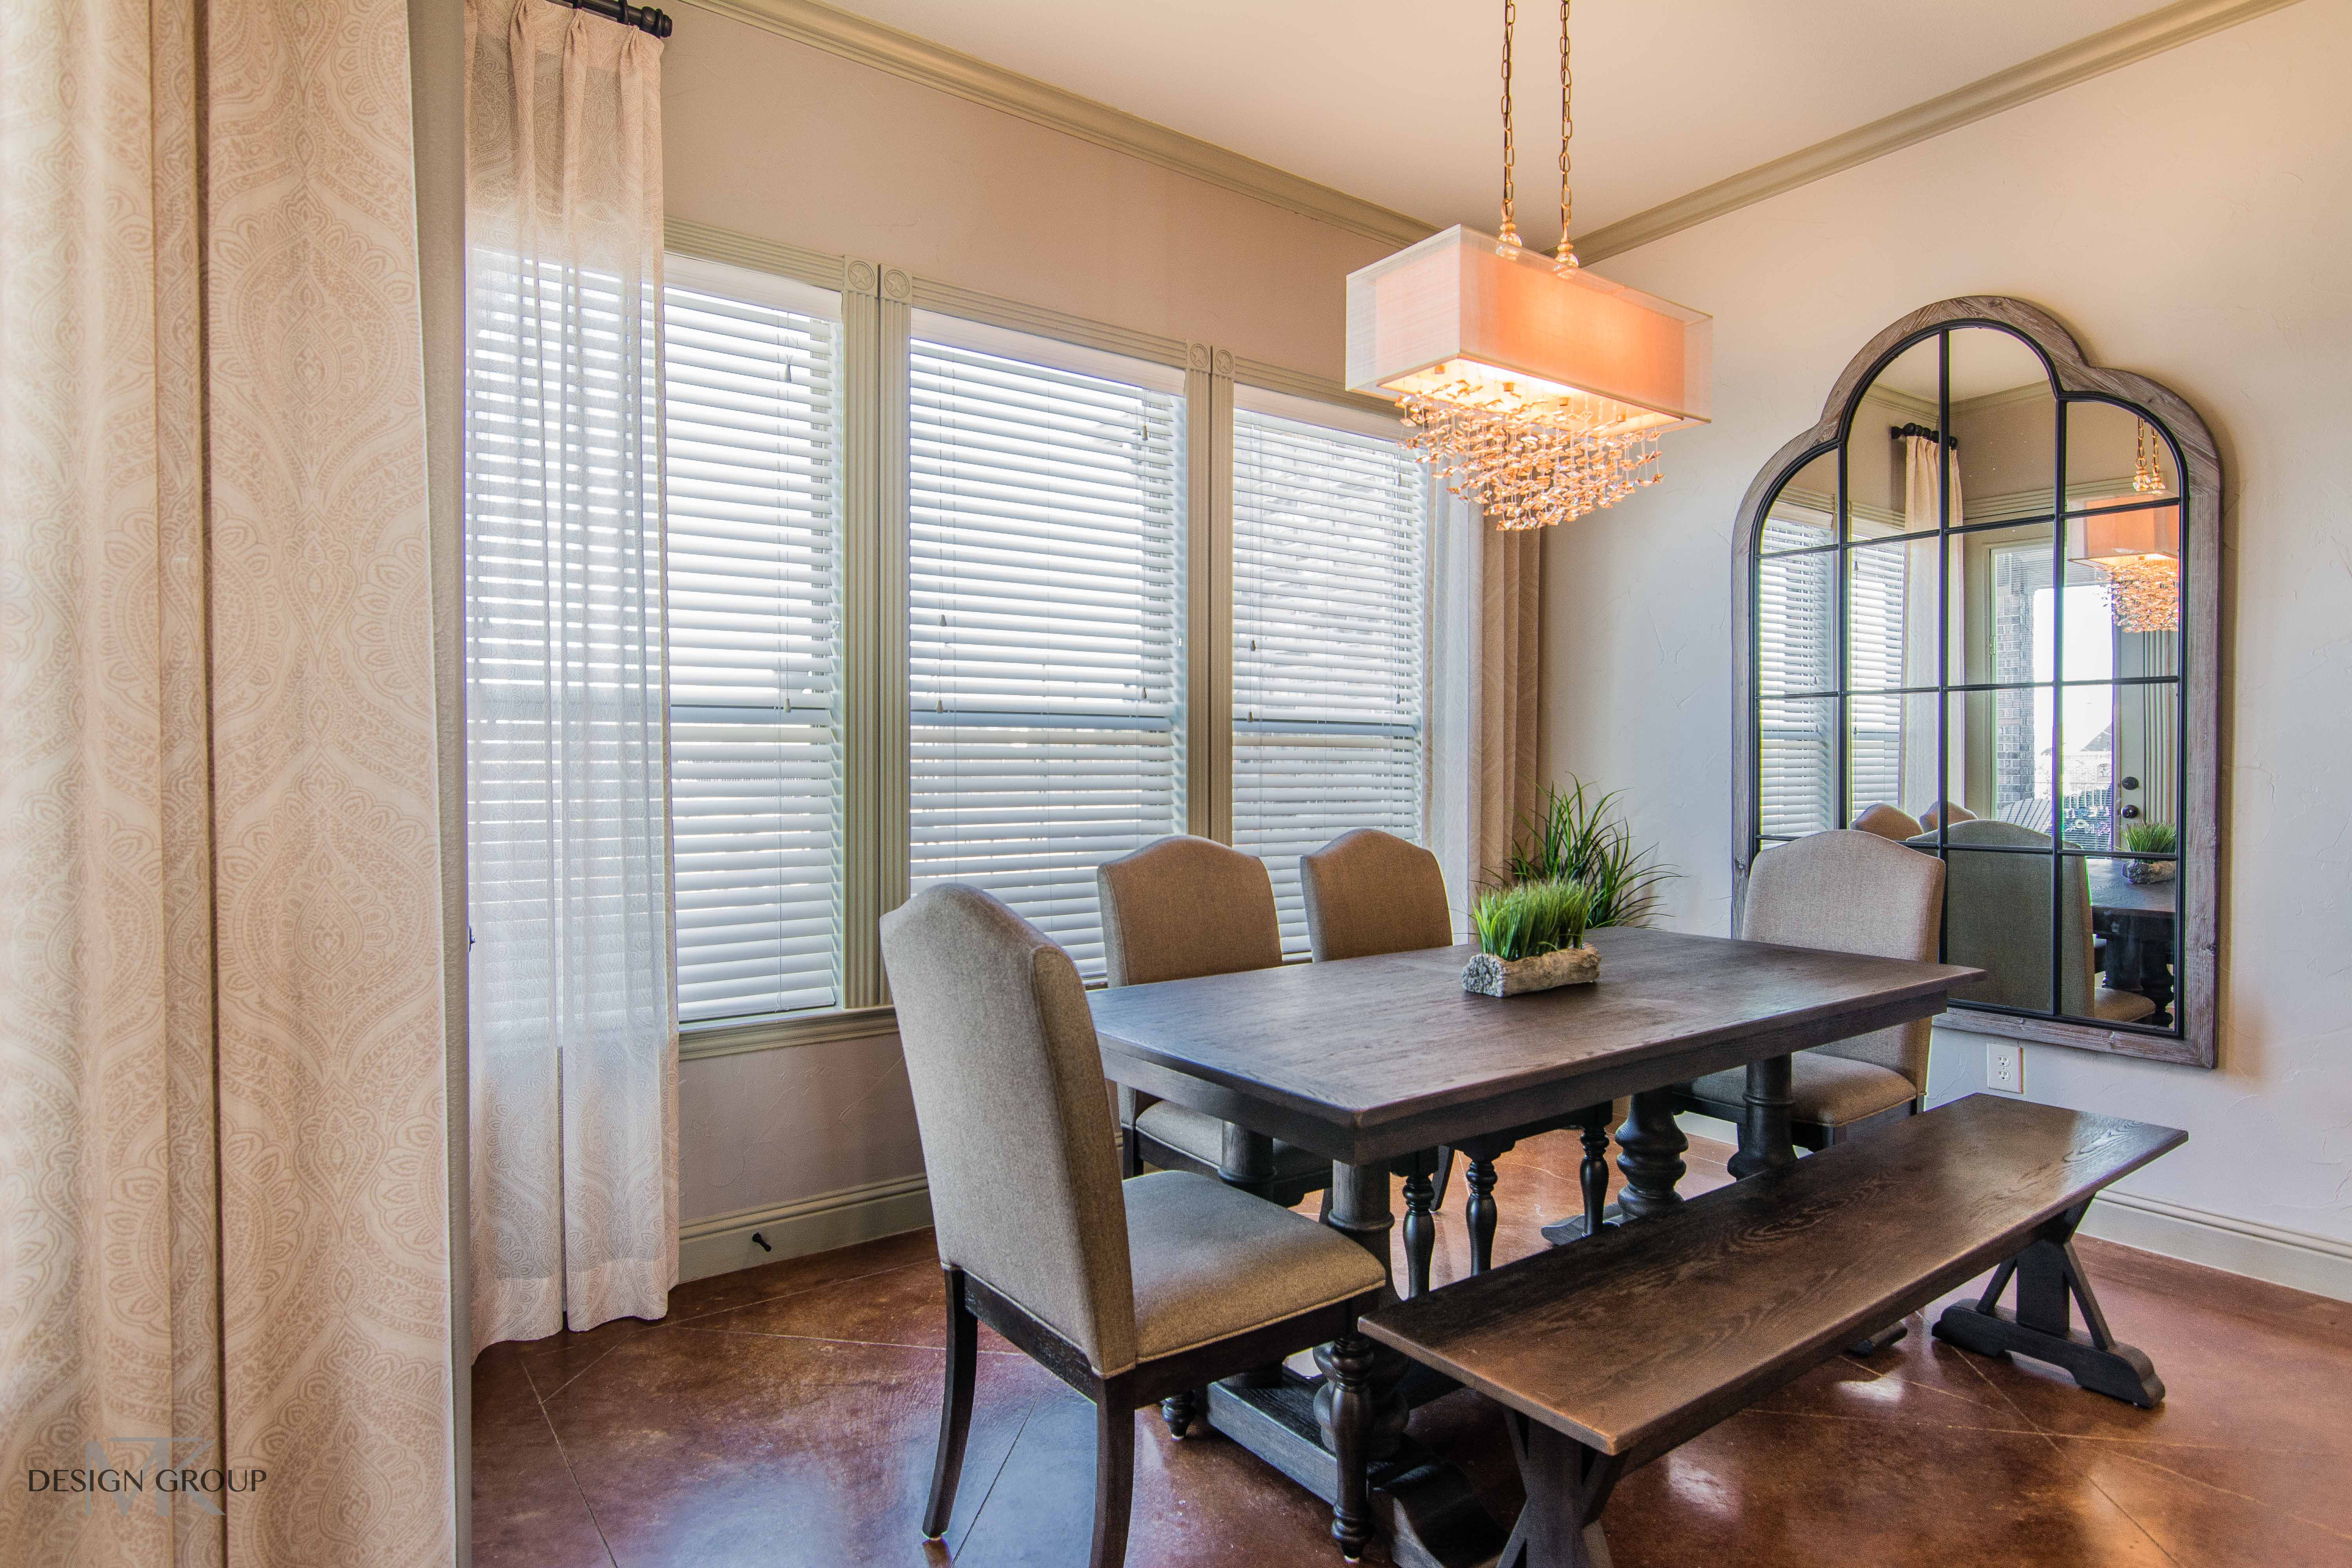 Midlothian Transitional Home Design, MTK Design Group, DFW Interior Decorating Services (18 of 39)